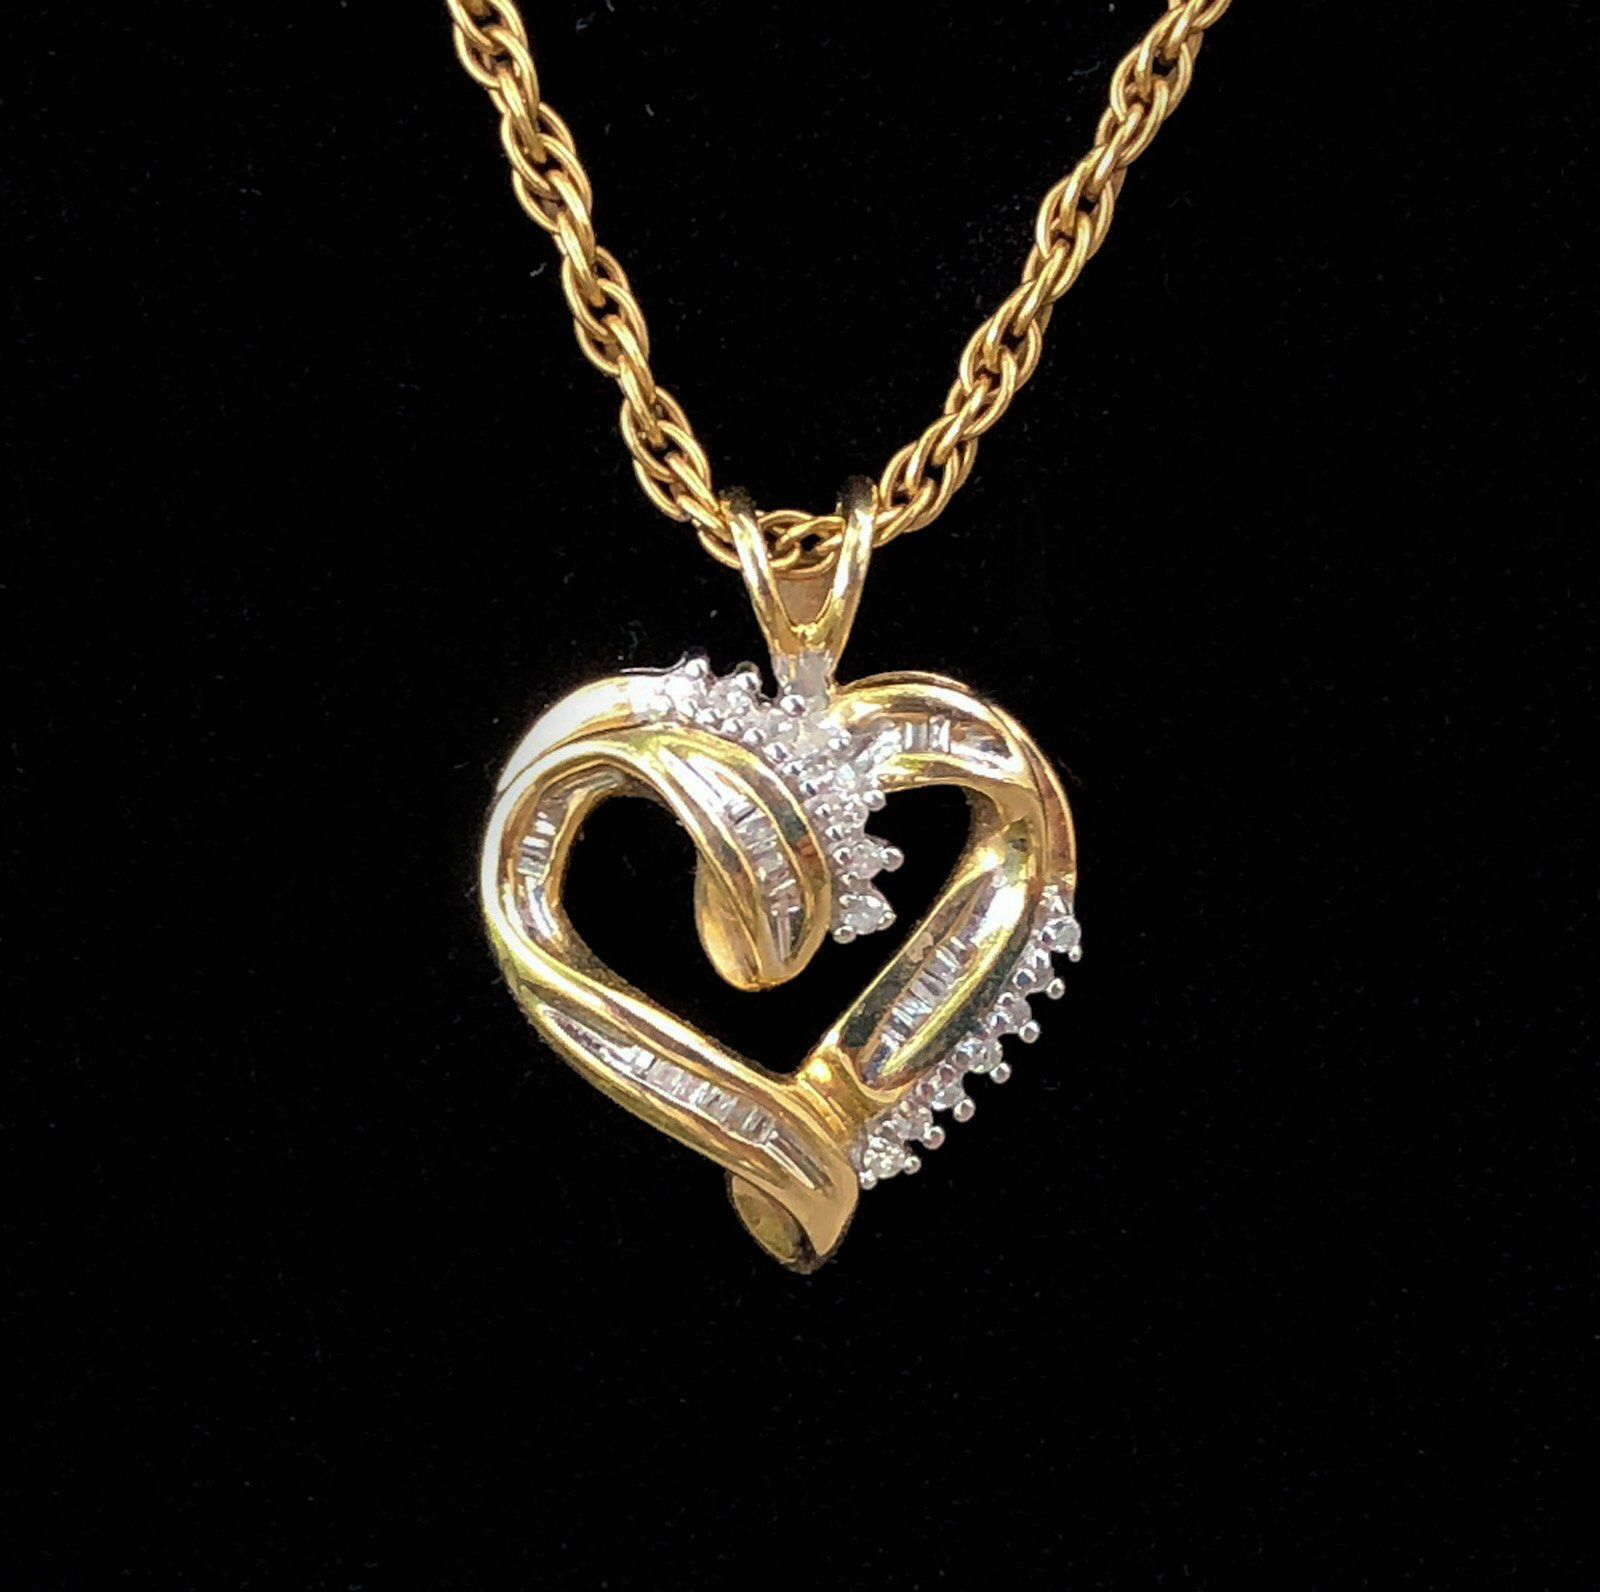 Vintage 10k Open Heart Pendant Yellow Gold With Diamond Chips Etsy Heart Pendant Gold Heart Pendant Gold Filled Chain